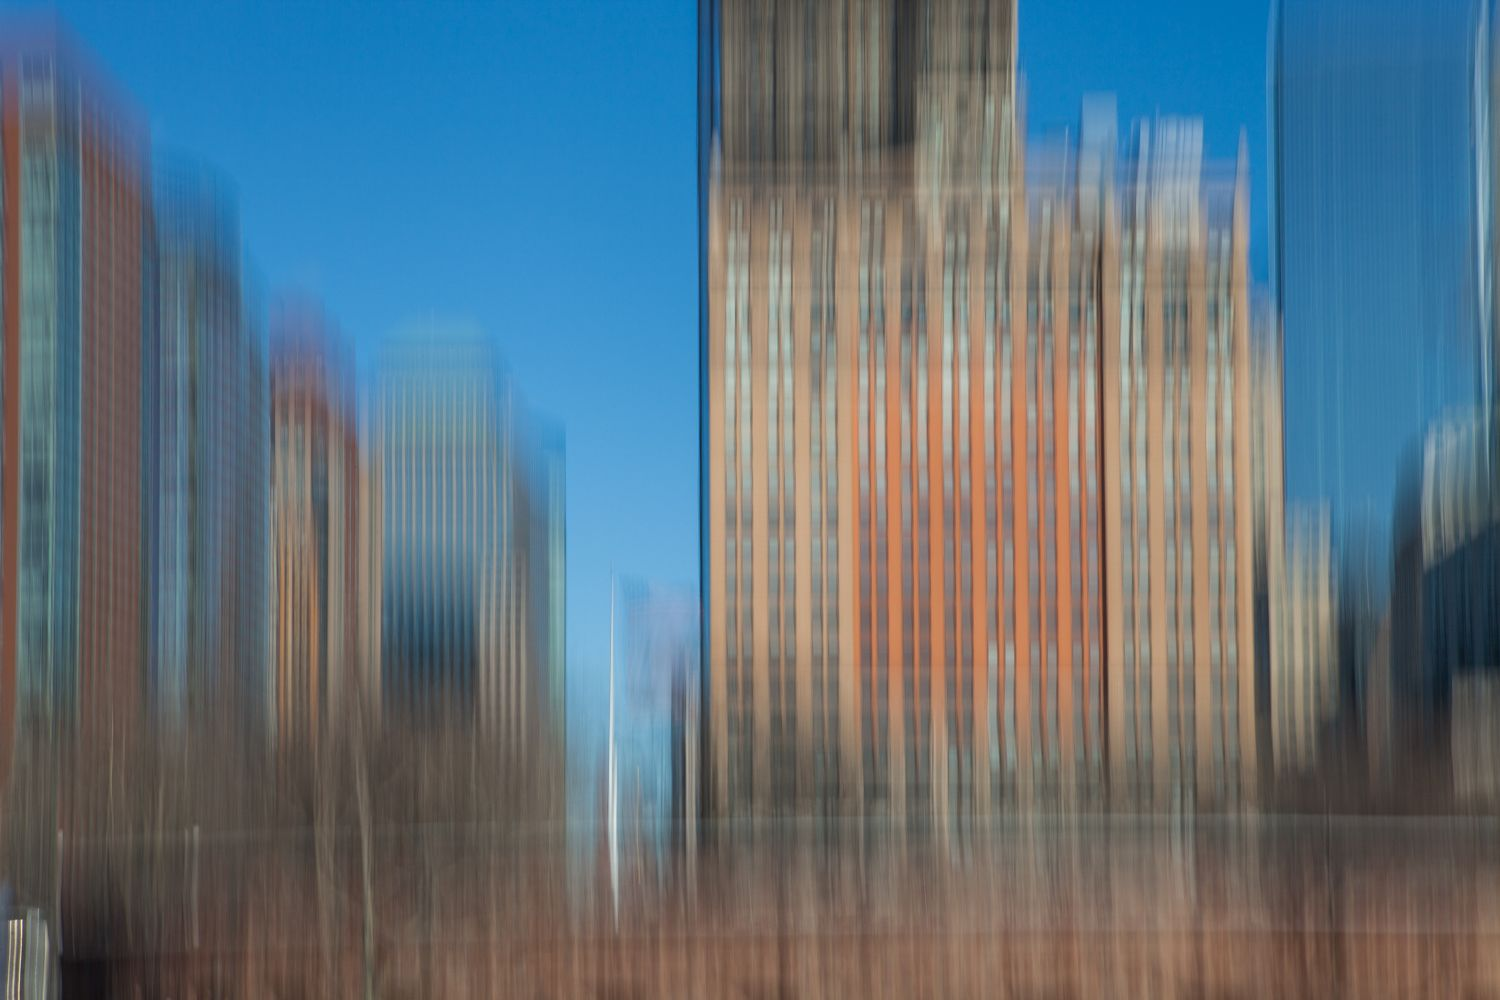 New York Dream 15 ,Xavier Dumoulin,Photographie contemporaine